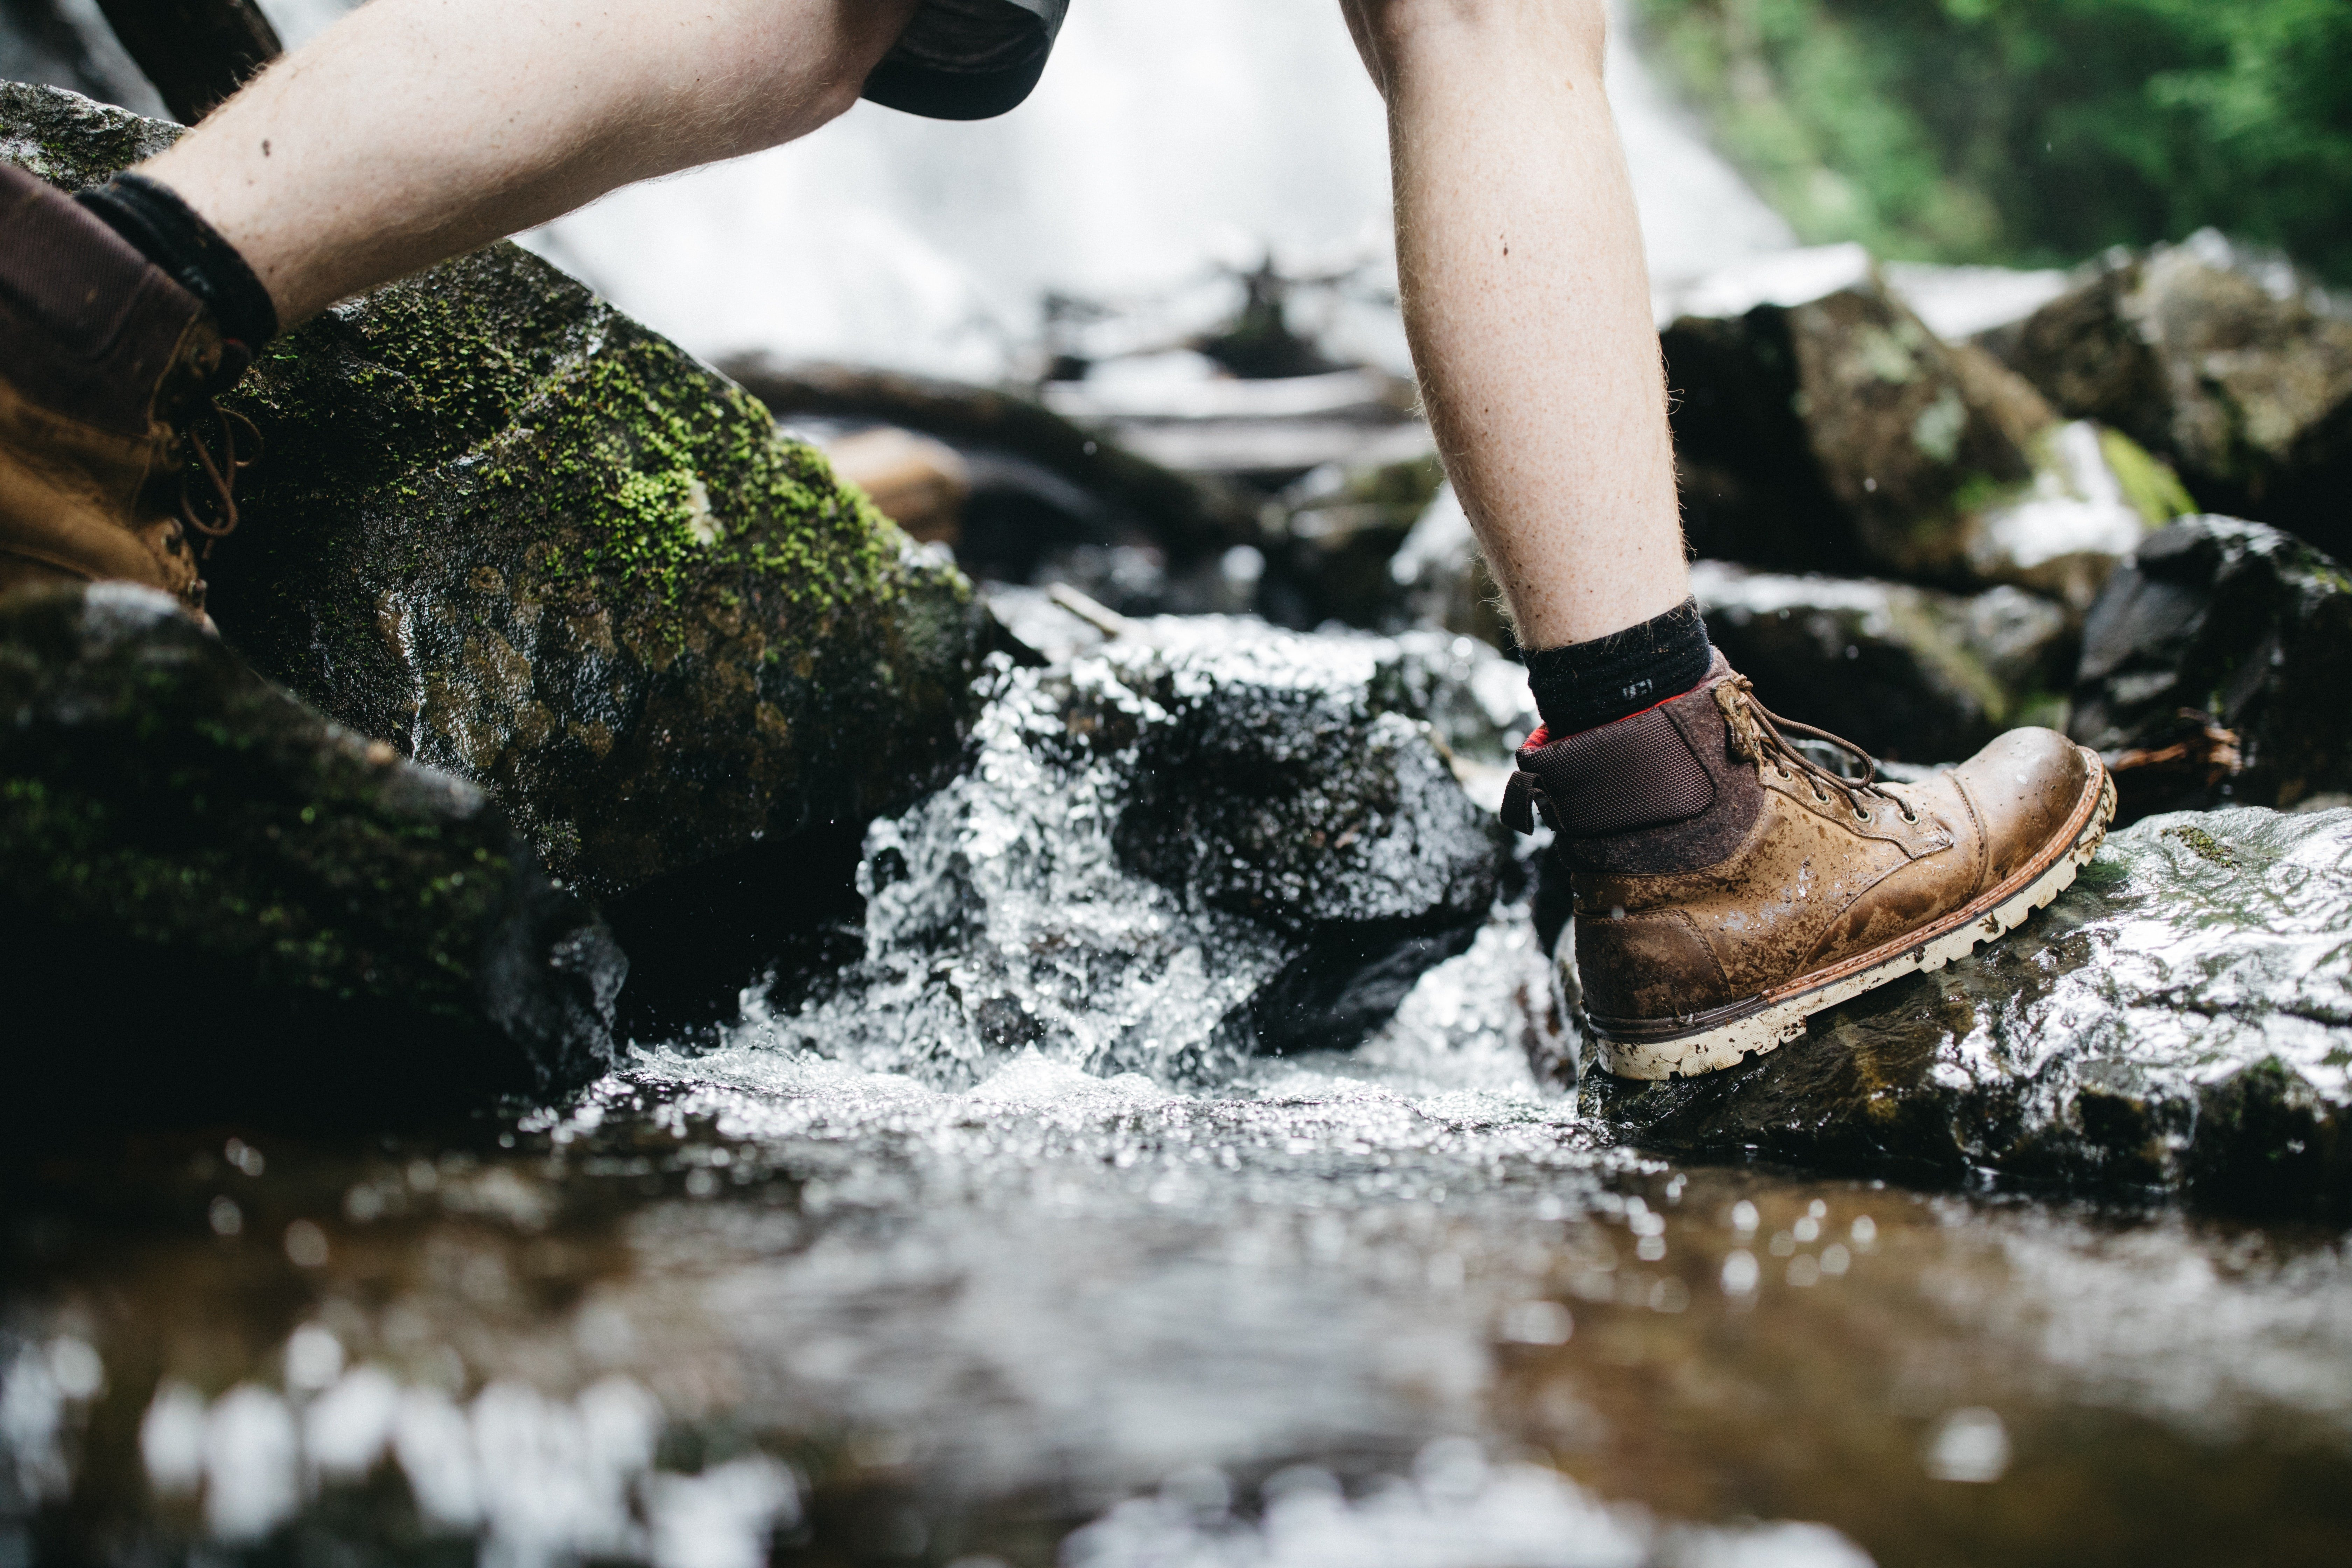 The legs of a well prepared hiker in leather hiking boots stepping on stones as they cross a mountain stream.